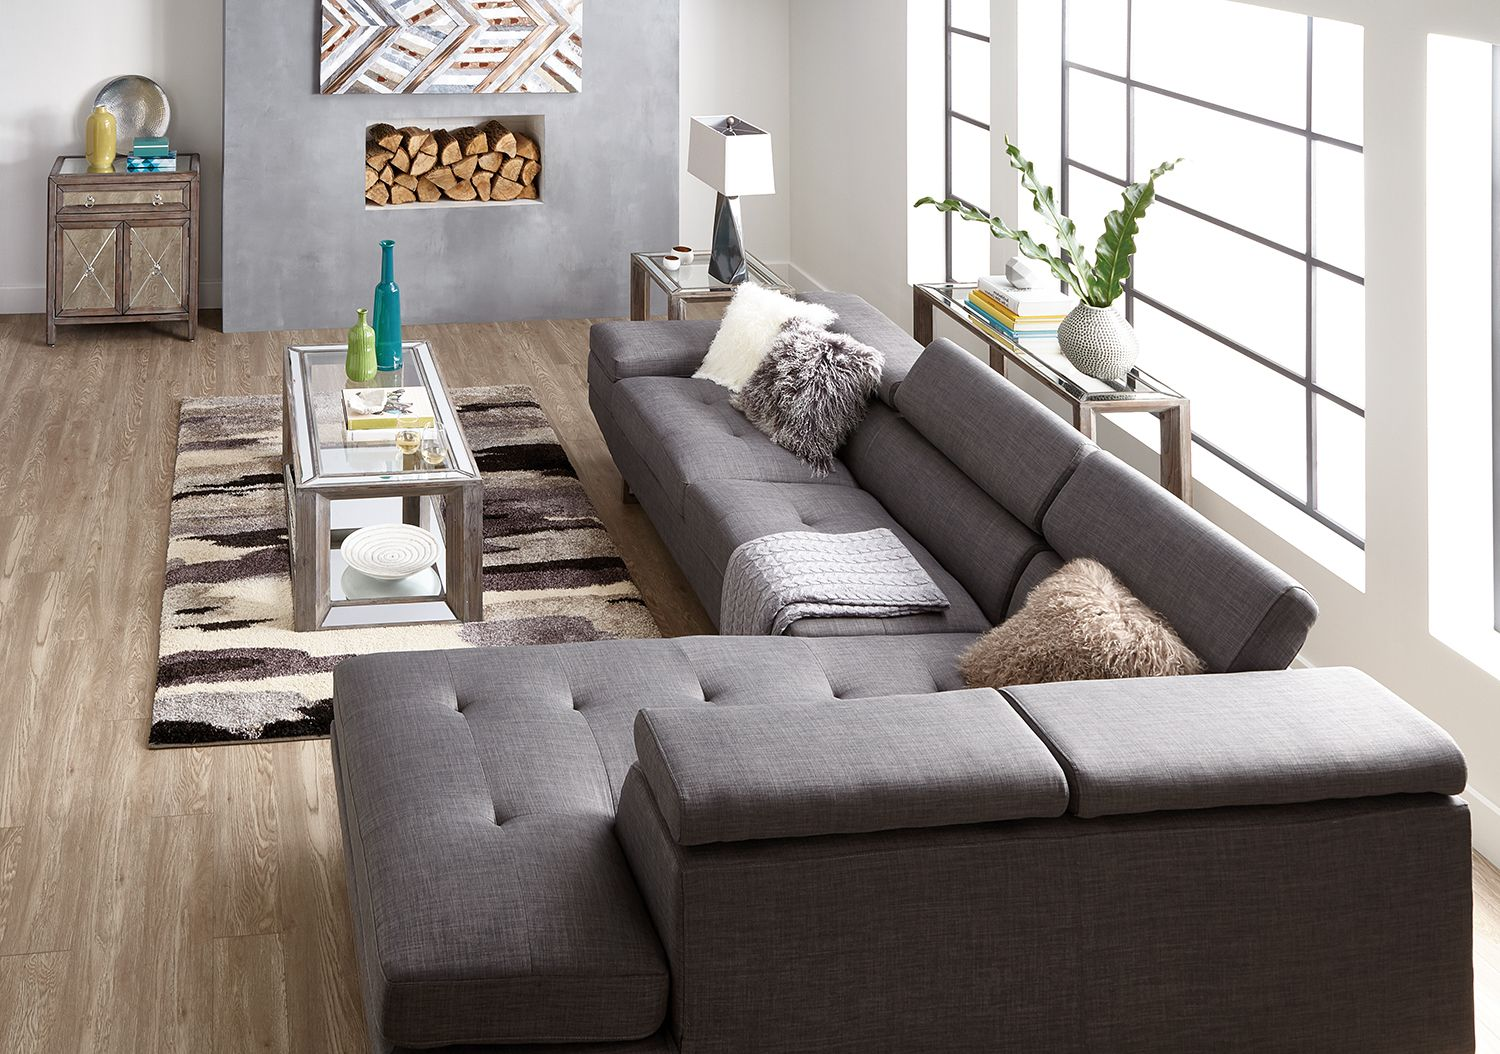 zeke 2 piece linen look fabric right facing sectional steel